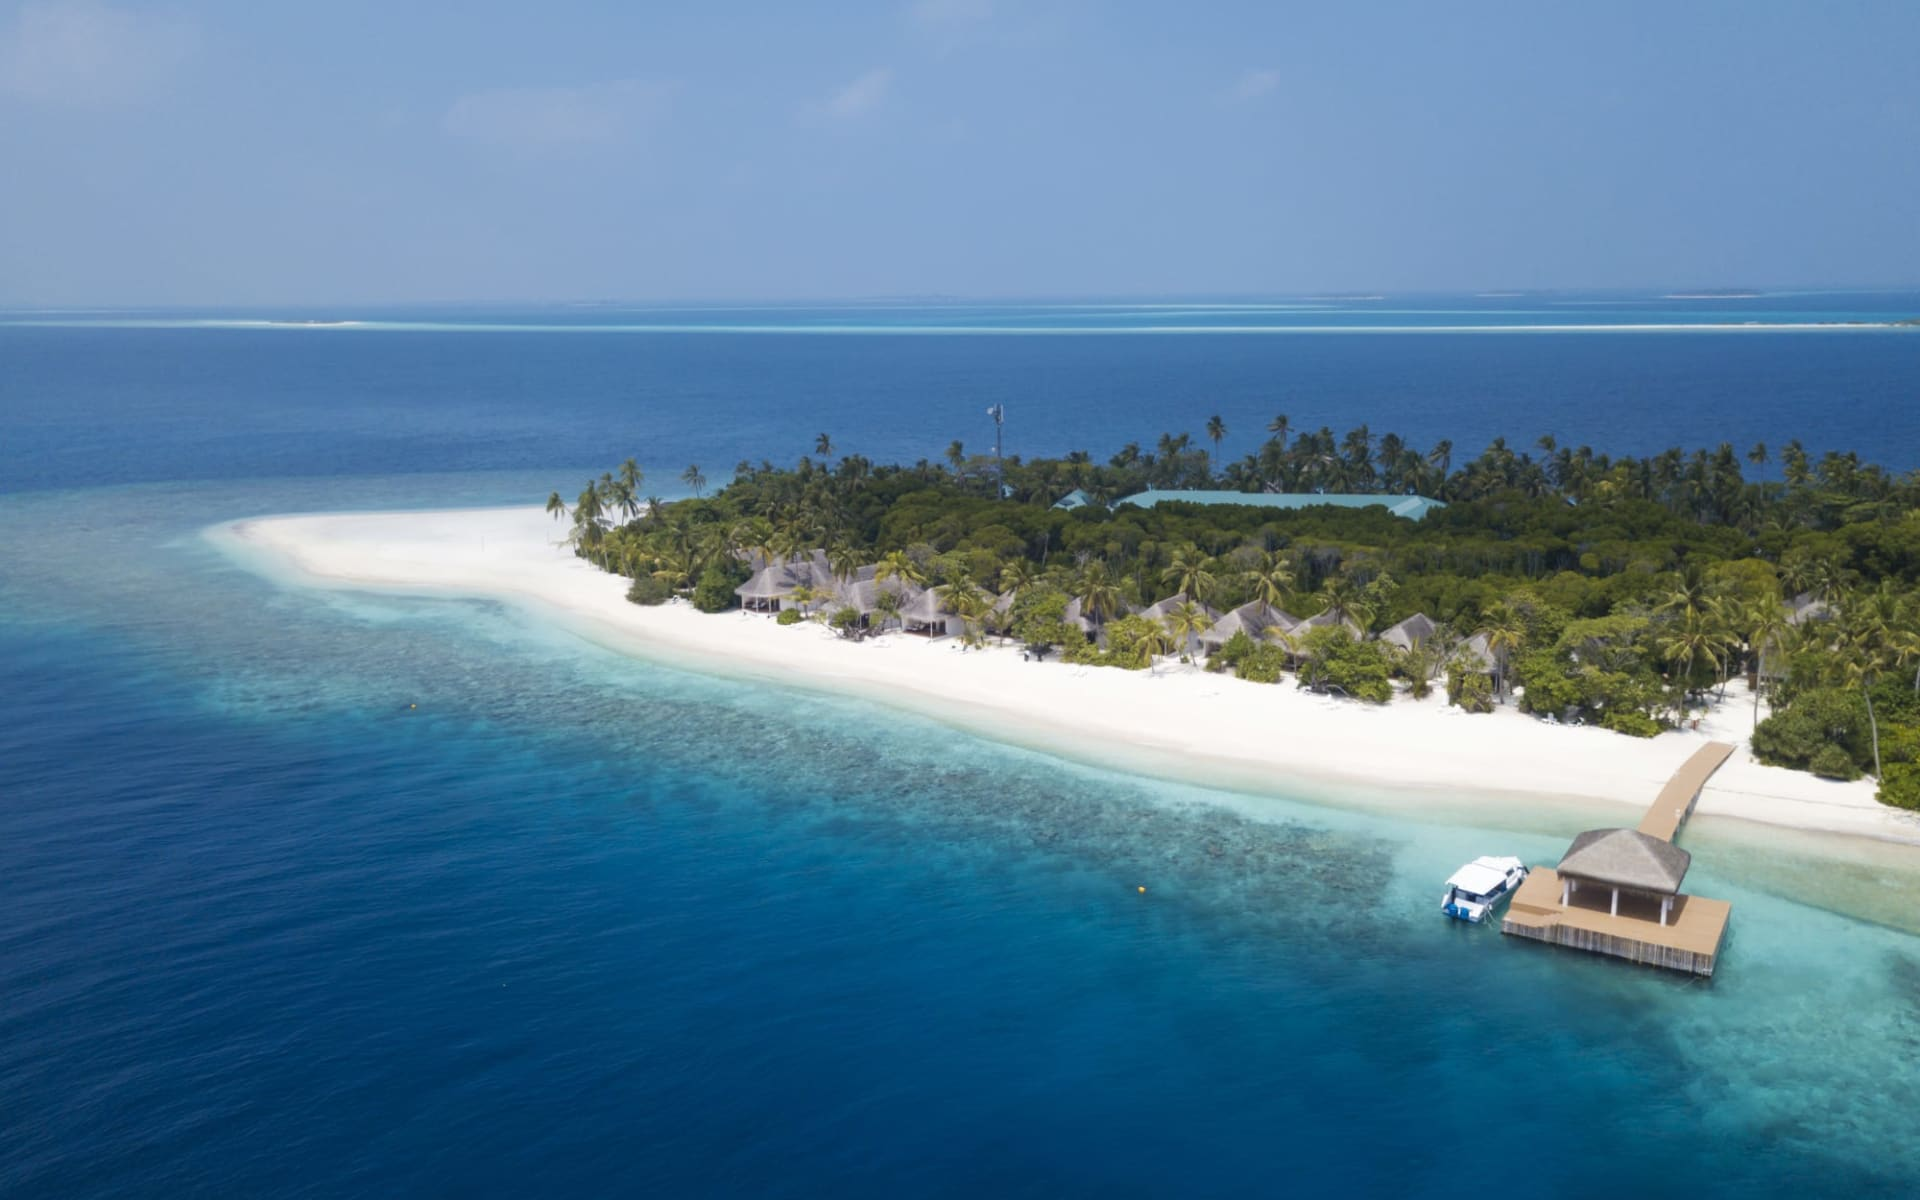 Dreamland The Unique Sea & Lake Resort / Spa in Baa-Atoll: